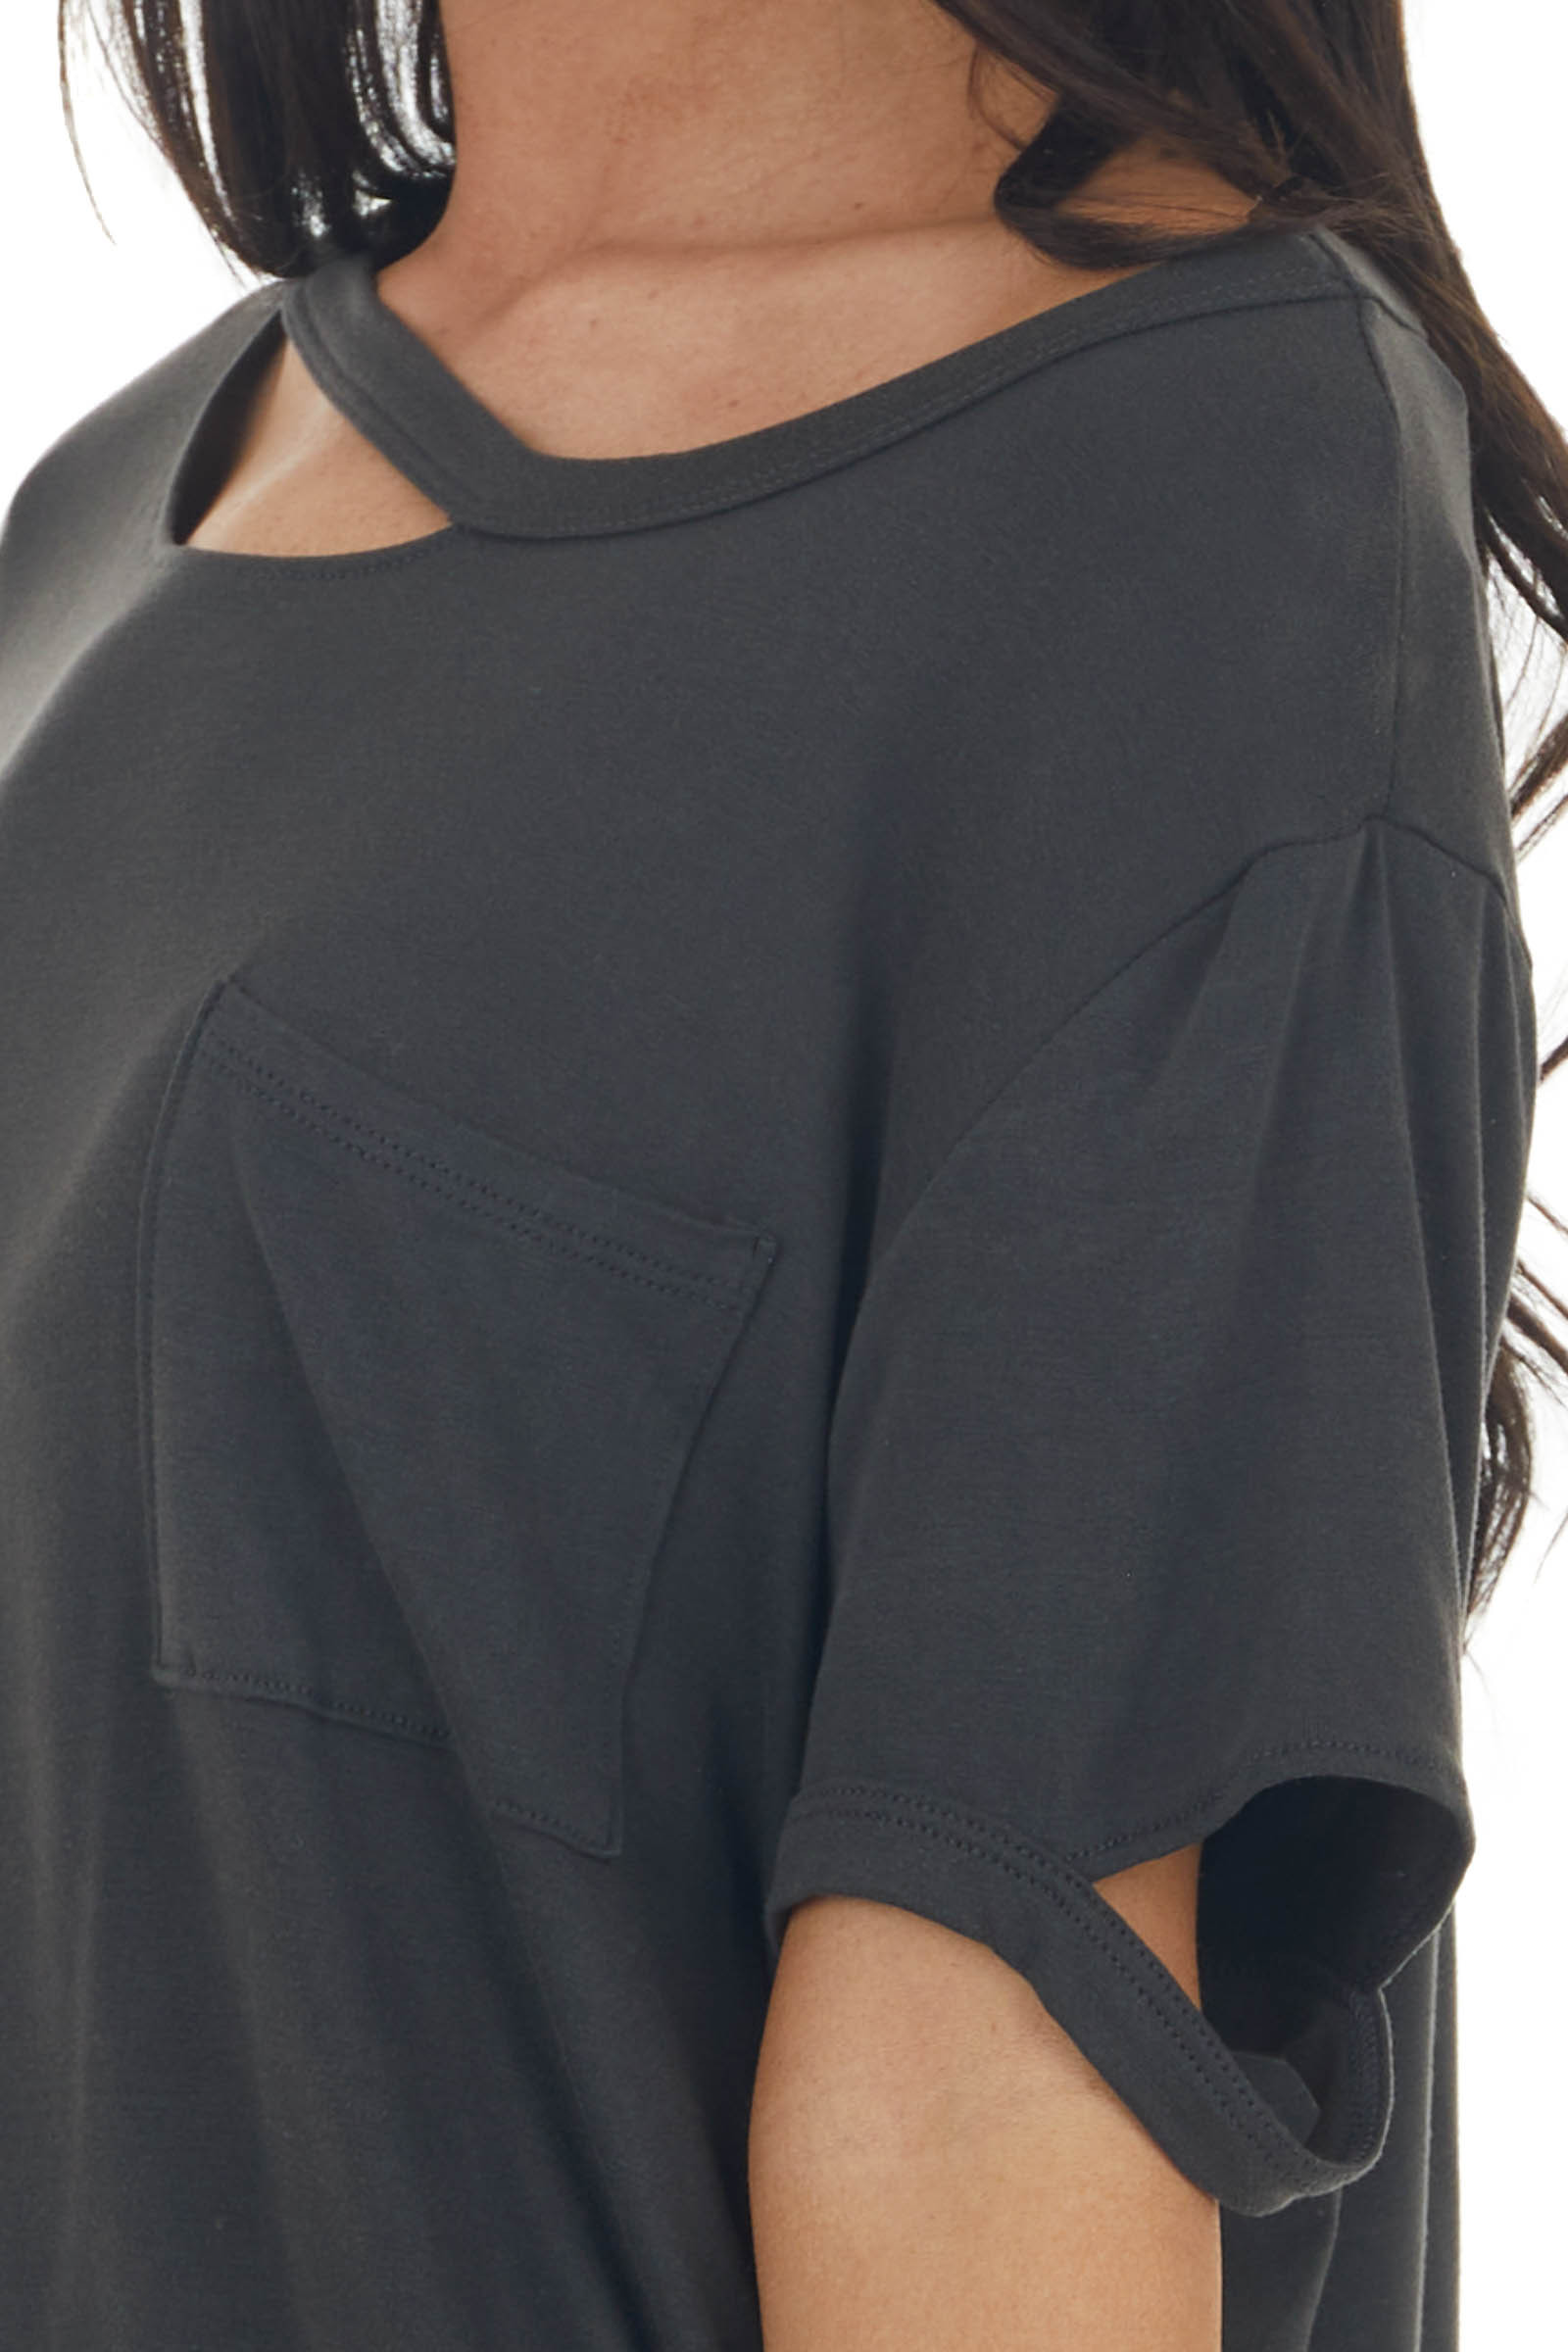 Faded Black Short Sleeve Cut Out Knit Tee with Chest Pocket